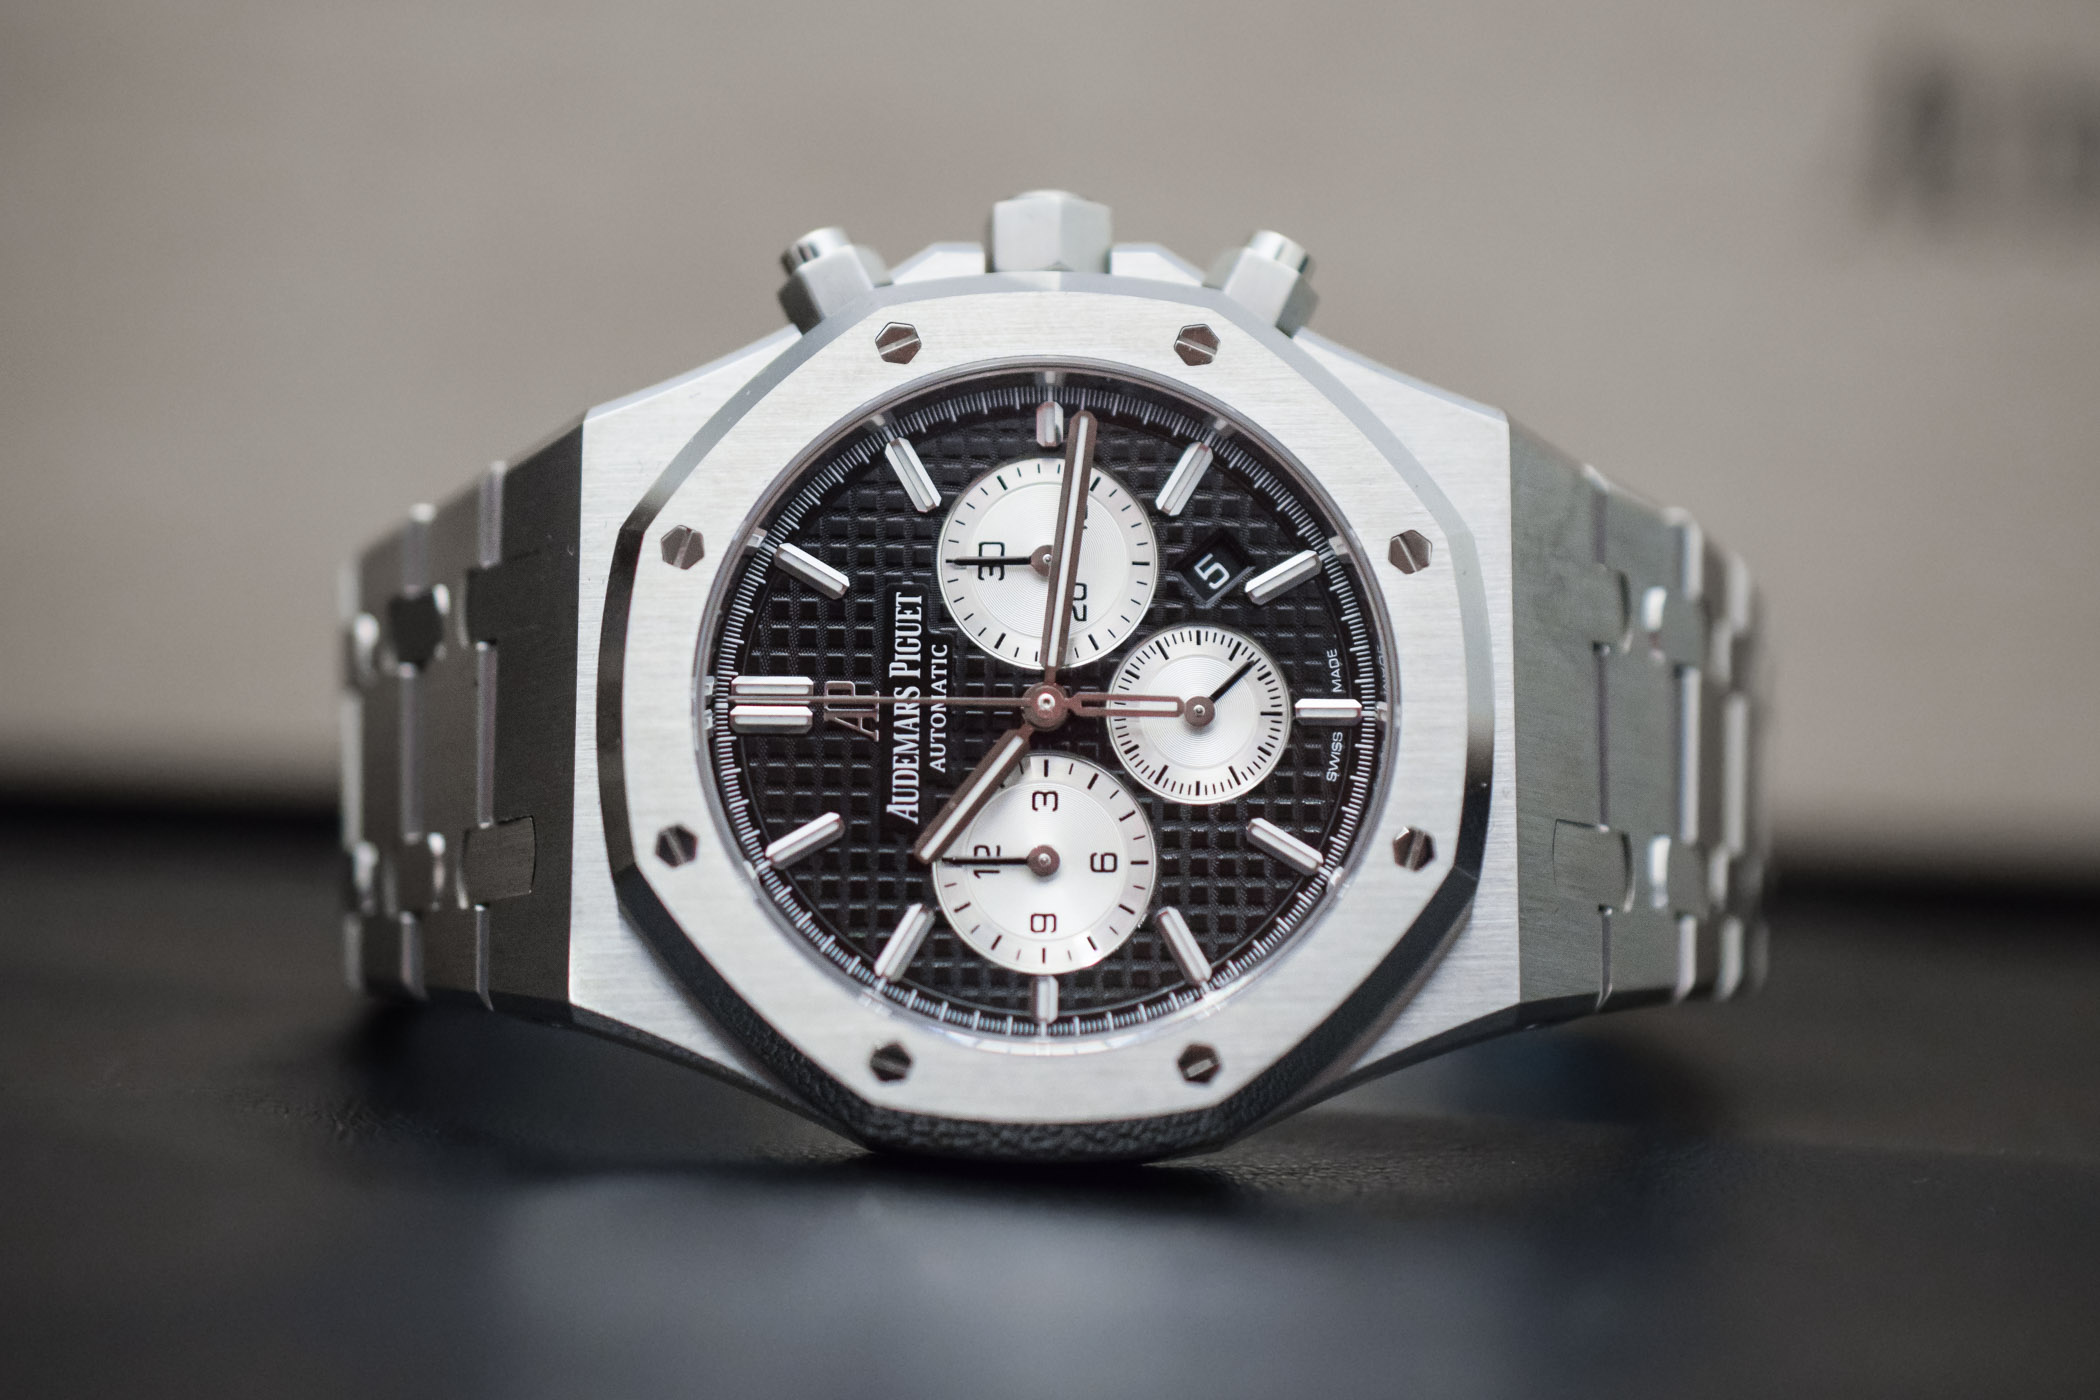 Audemars Piguet Royal Oak Chronograph 2017